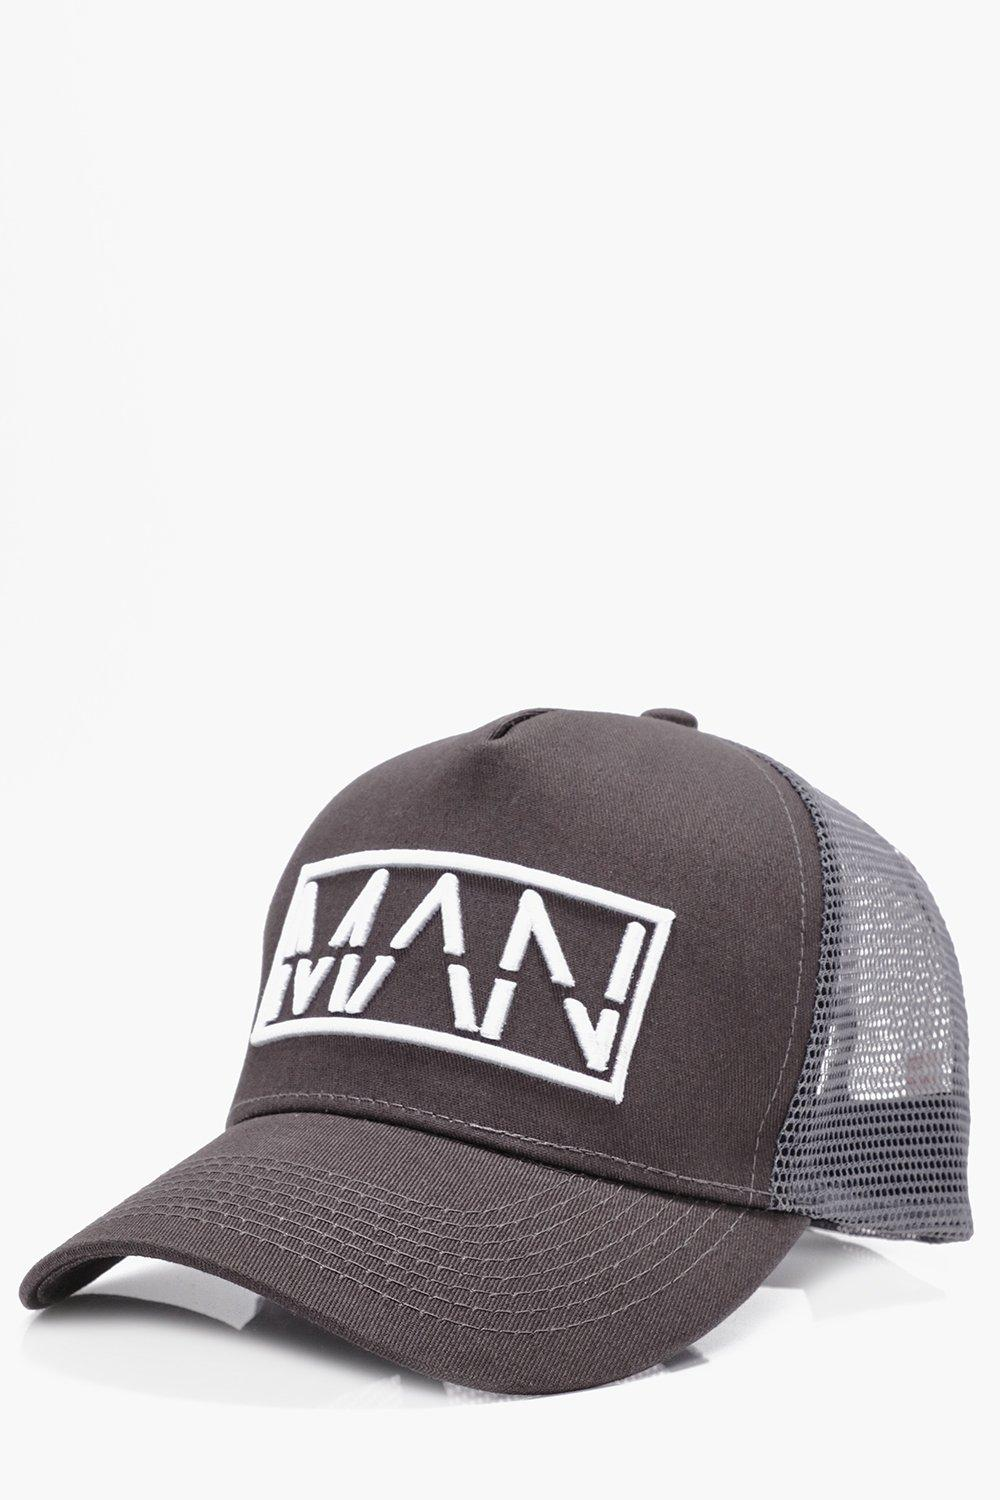 Contrast Embroidery Trucker Hat - grey - MAN Contr